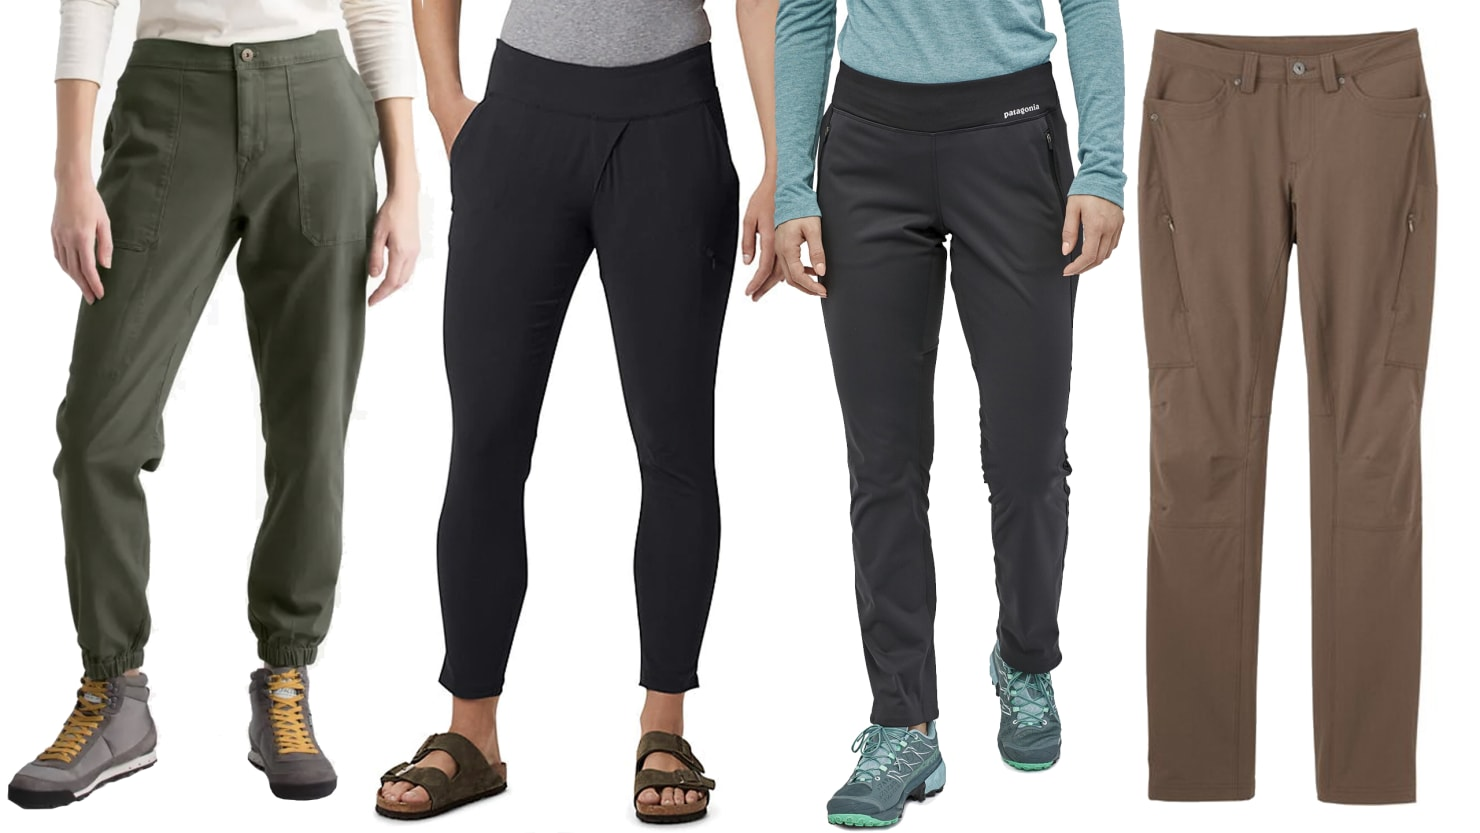 Women's Performance Pants That Actually Have Pockets - The Daily Beast